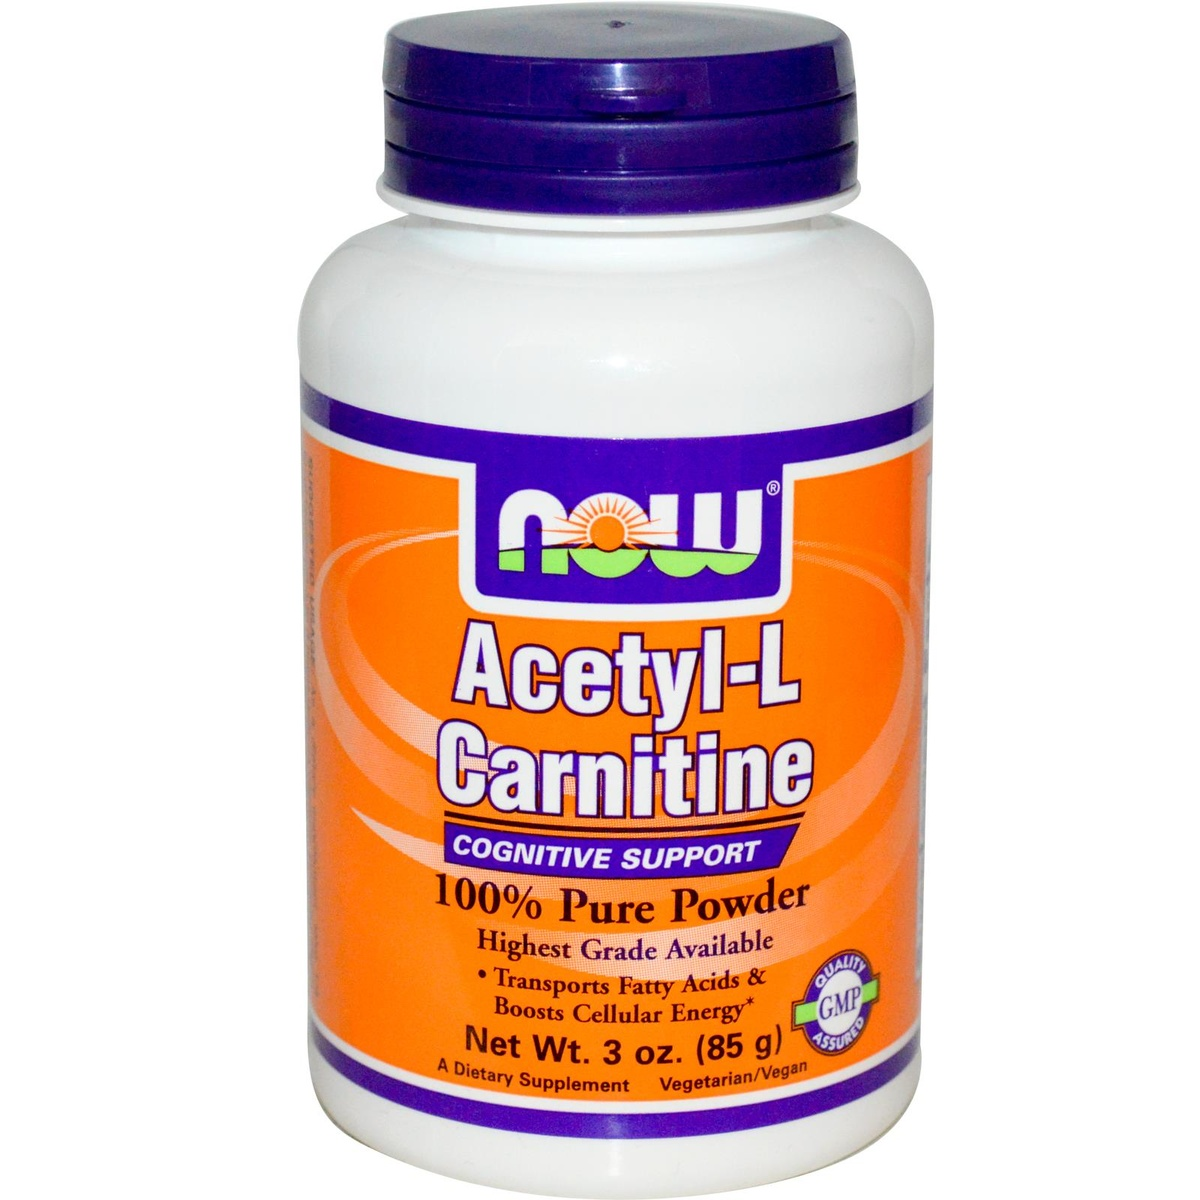 NOW Foods Acetyl L Carnitine Powder